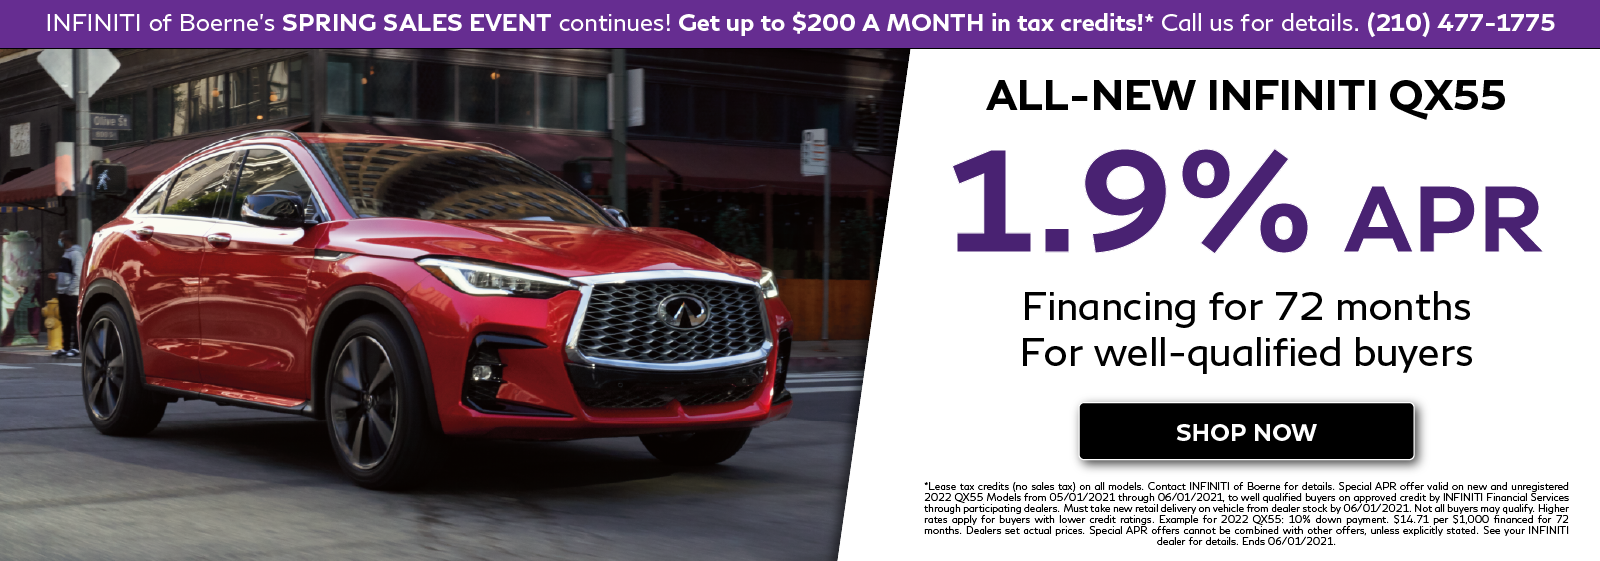 1.9% APR Financing on all-new 2022 INFINITI QX55. Click to shop now.